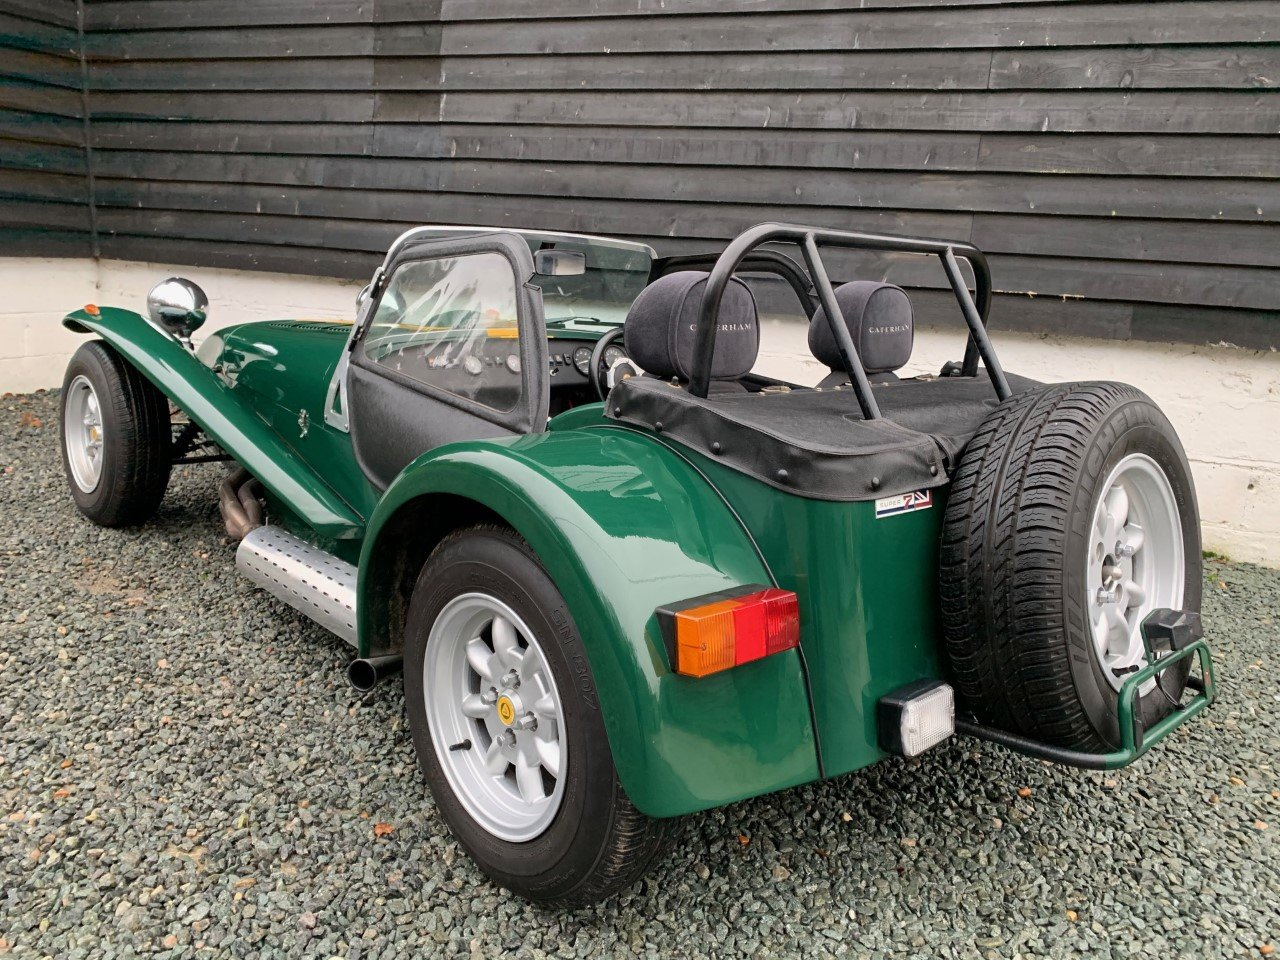 1998 Caterham Classic 1.6 VX Vauxhall 100bhp 5 speed For Sale (picture 2 of 6)